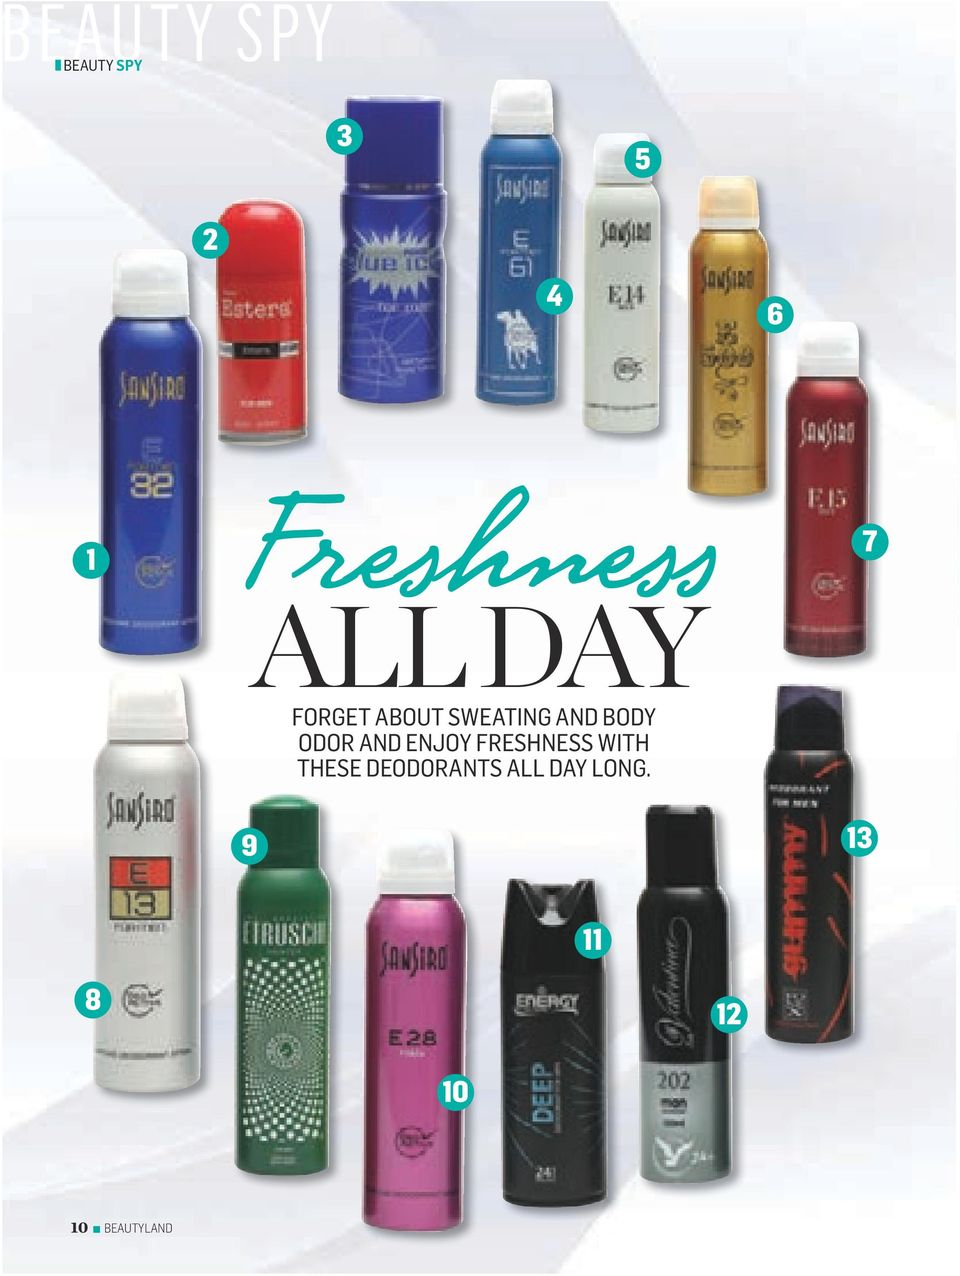 AND ENJOY FRESHNESS WITH THESE DEODORANTS